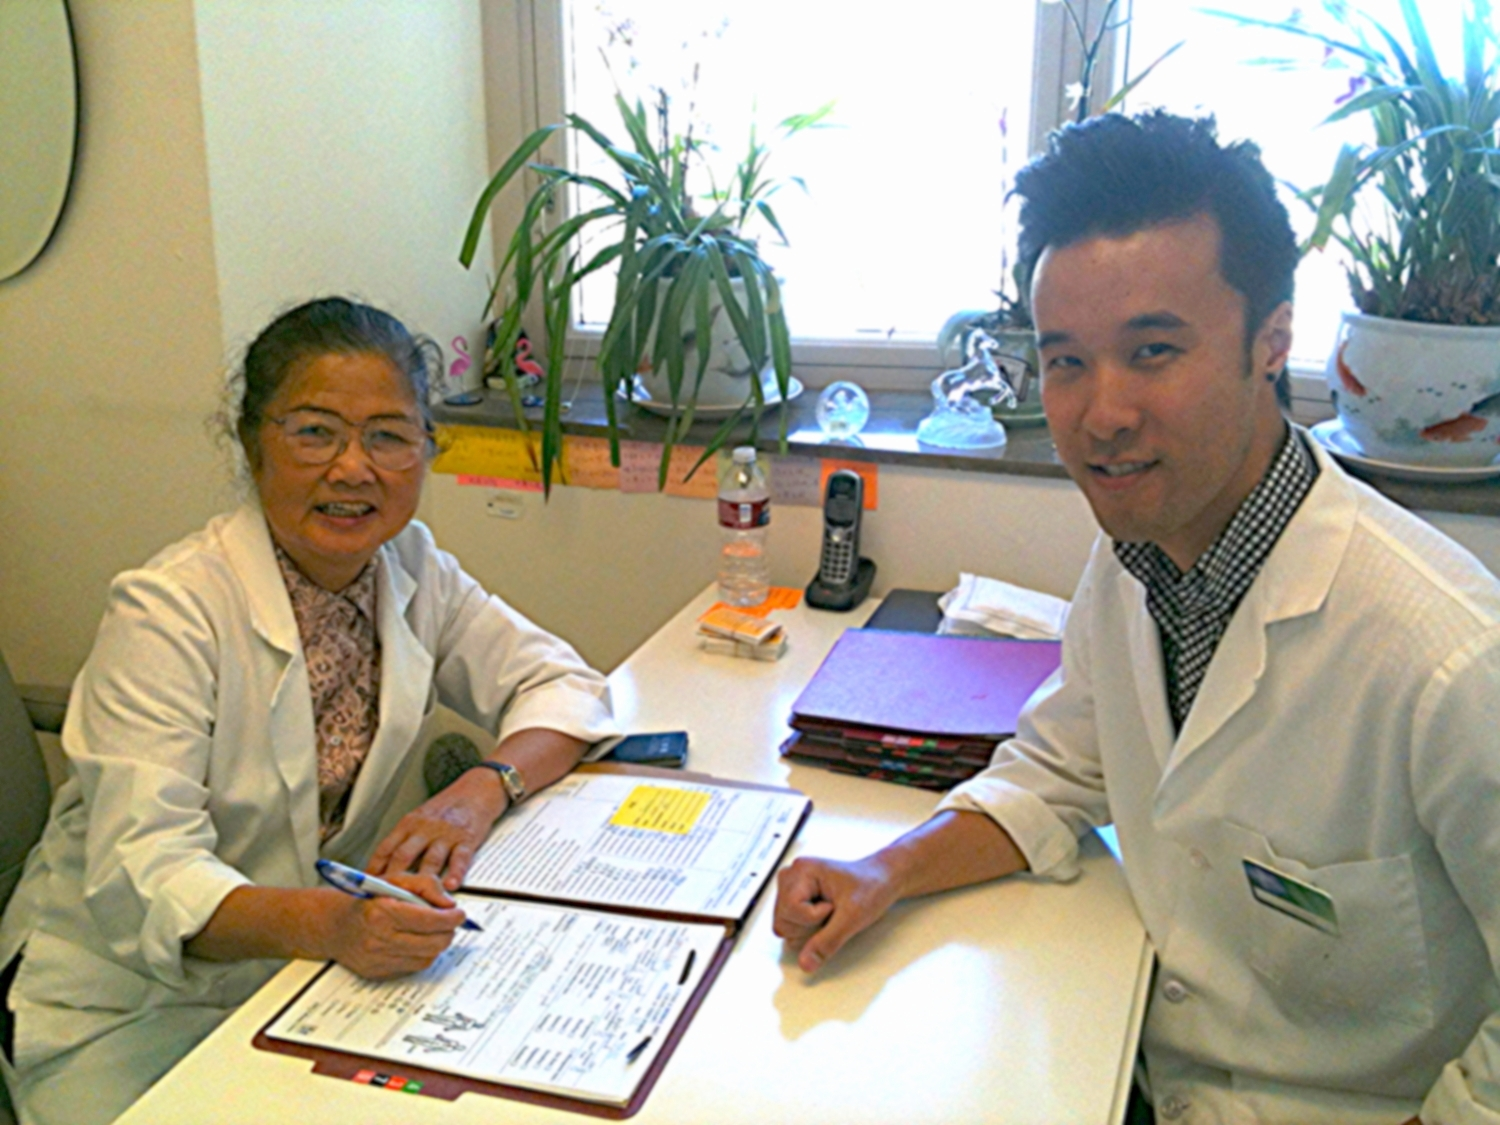 Wylie Huey, L.Ac. (right) is pictured here in 2009 with now-retired fertility expert Dr. Lifang Liang.